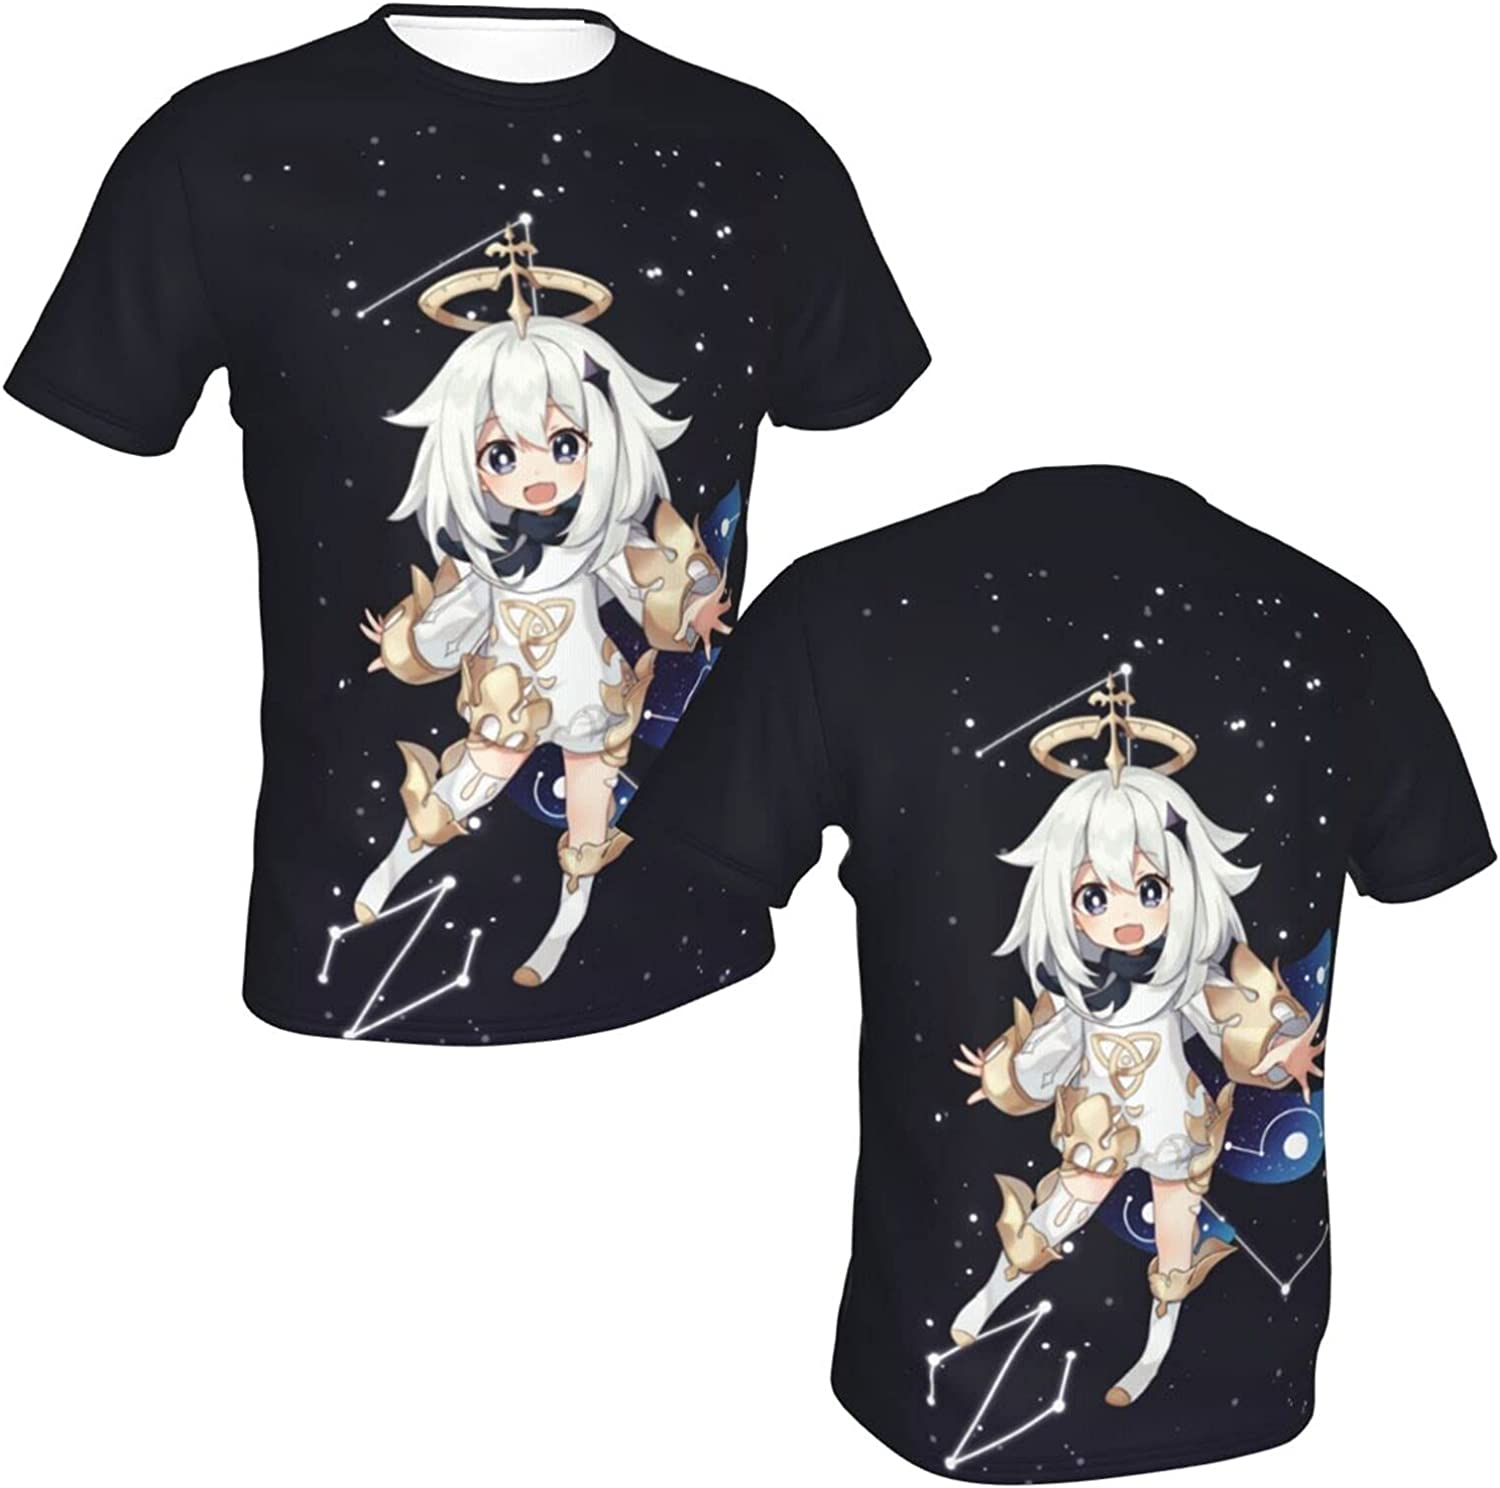 Dealing full price reduction Qnoon T-Shirt for Adult 3D Sh Printed Cosplay Anime Jacksonville Mall with